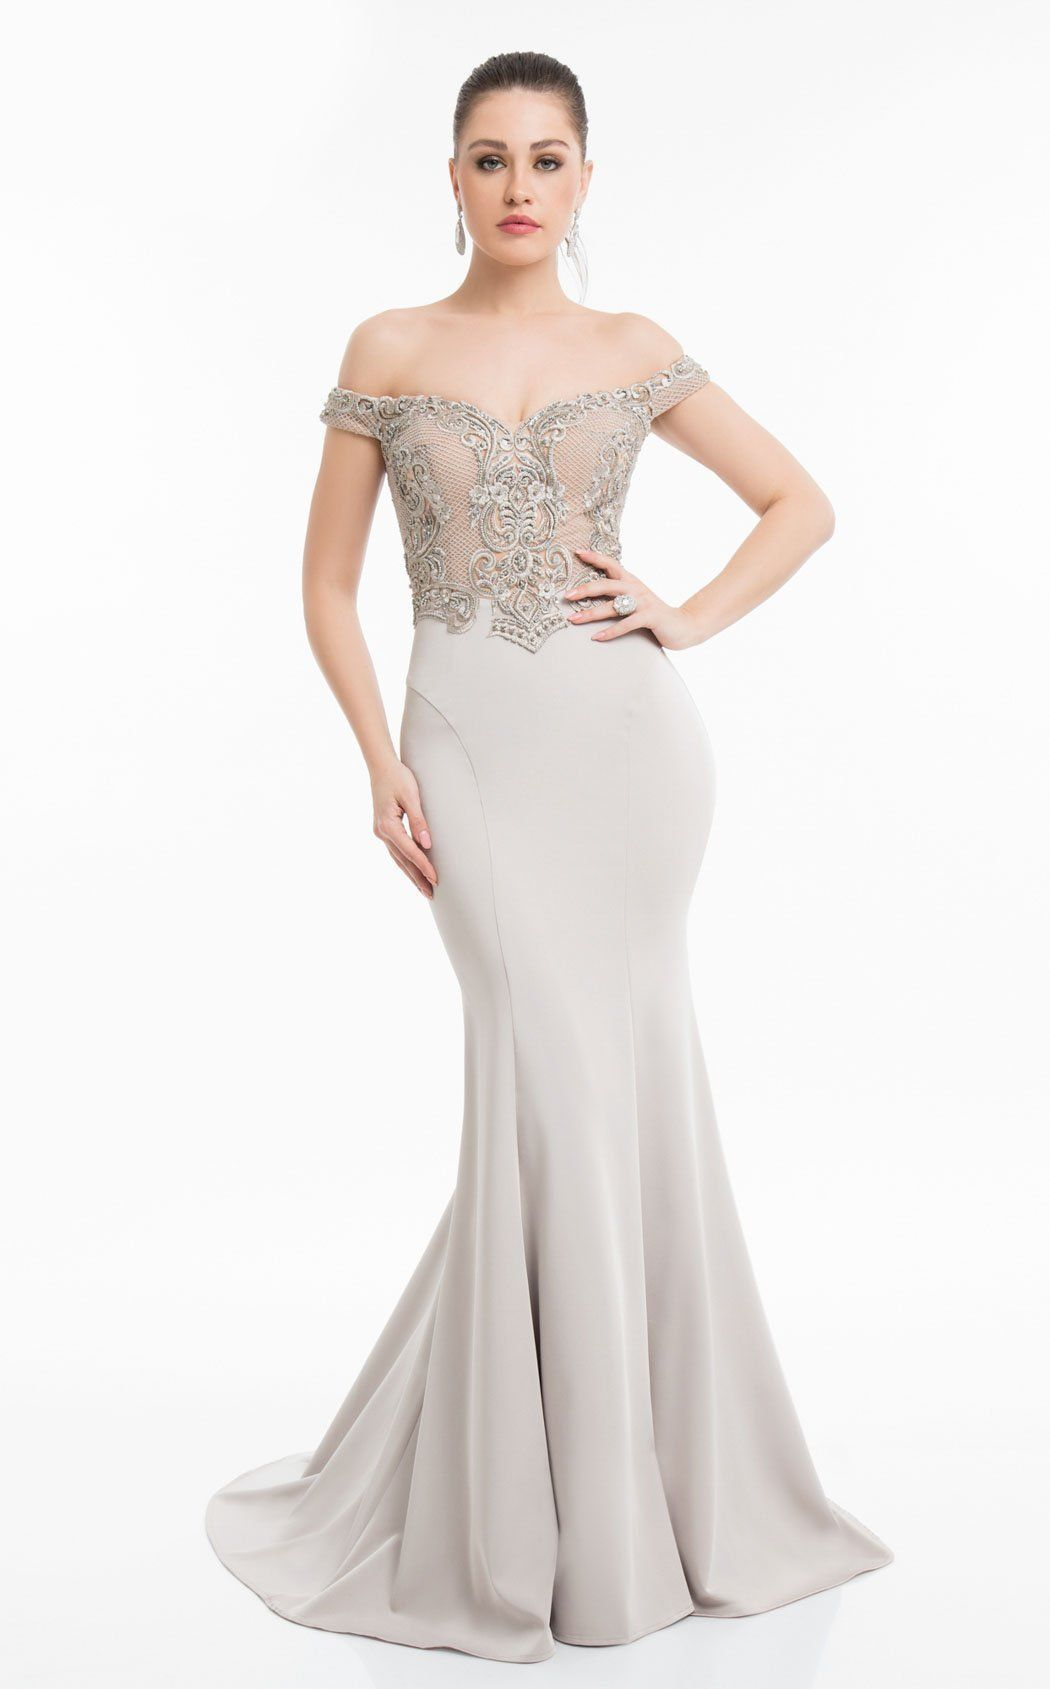 29a55d98259 Terani Couture Off-The-Shoulder Stones Detail Evening Dress ...